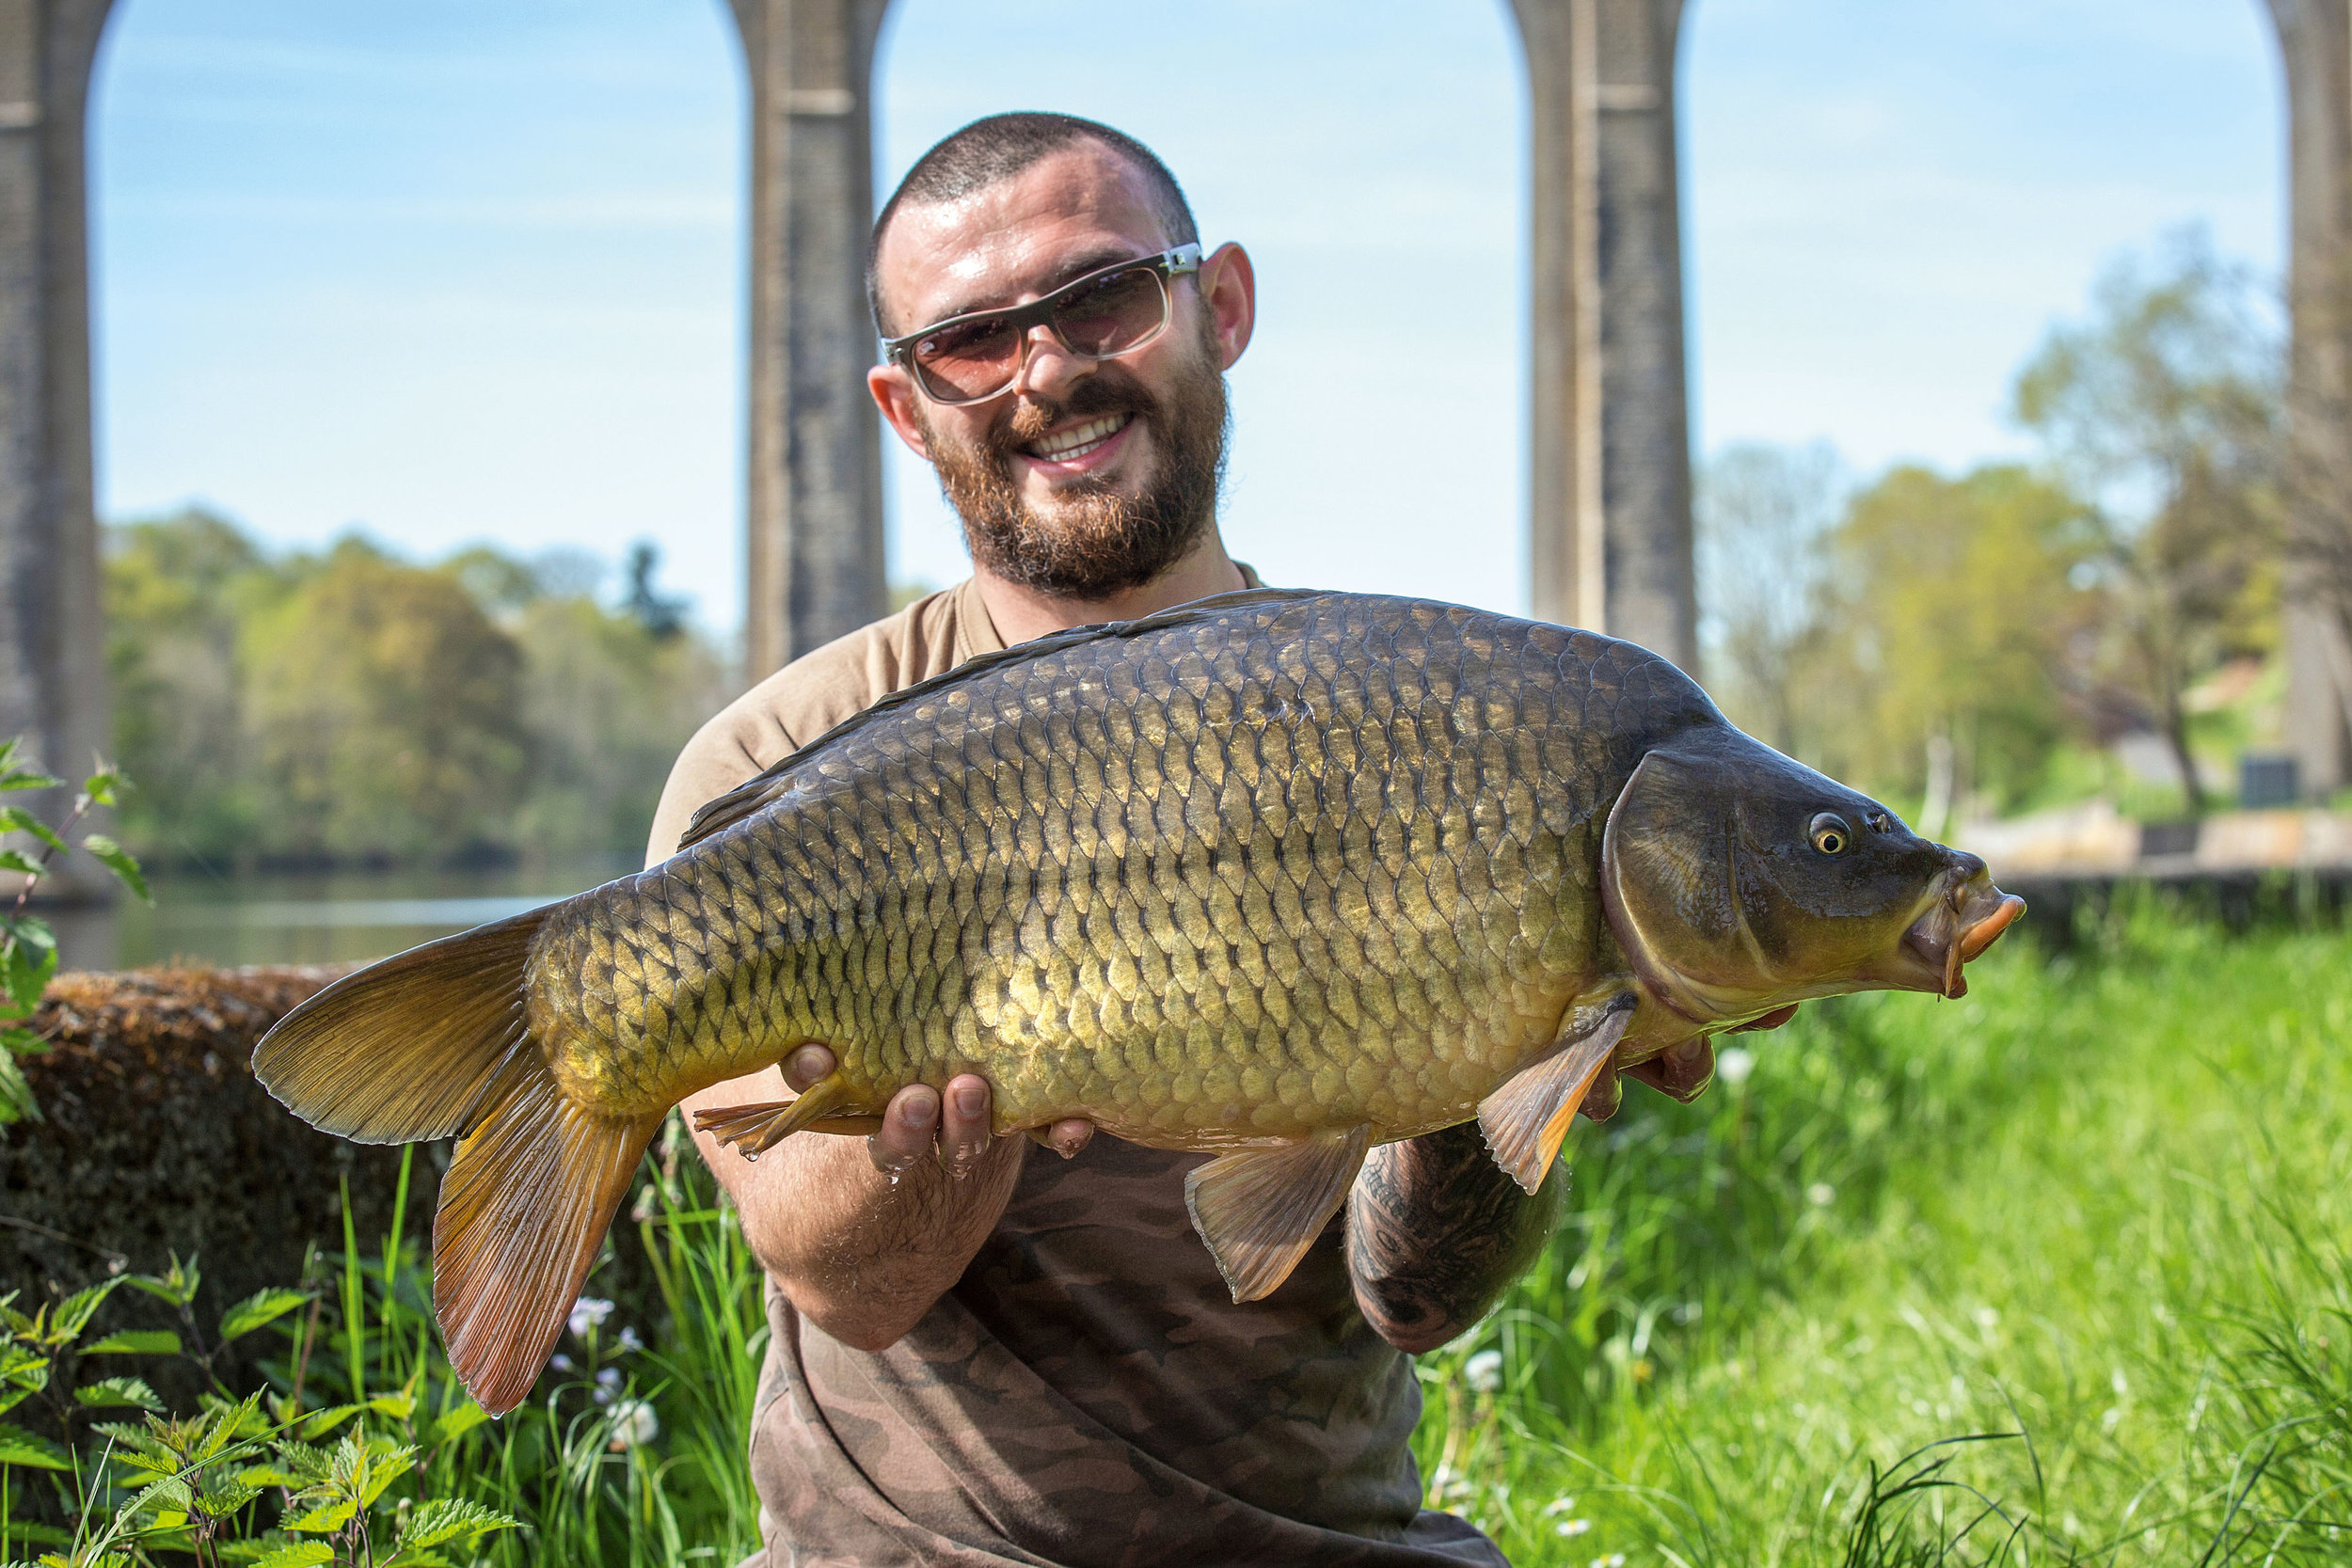 Sean with the first carp from the river, at a little over 21lb